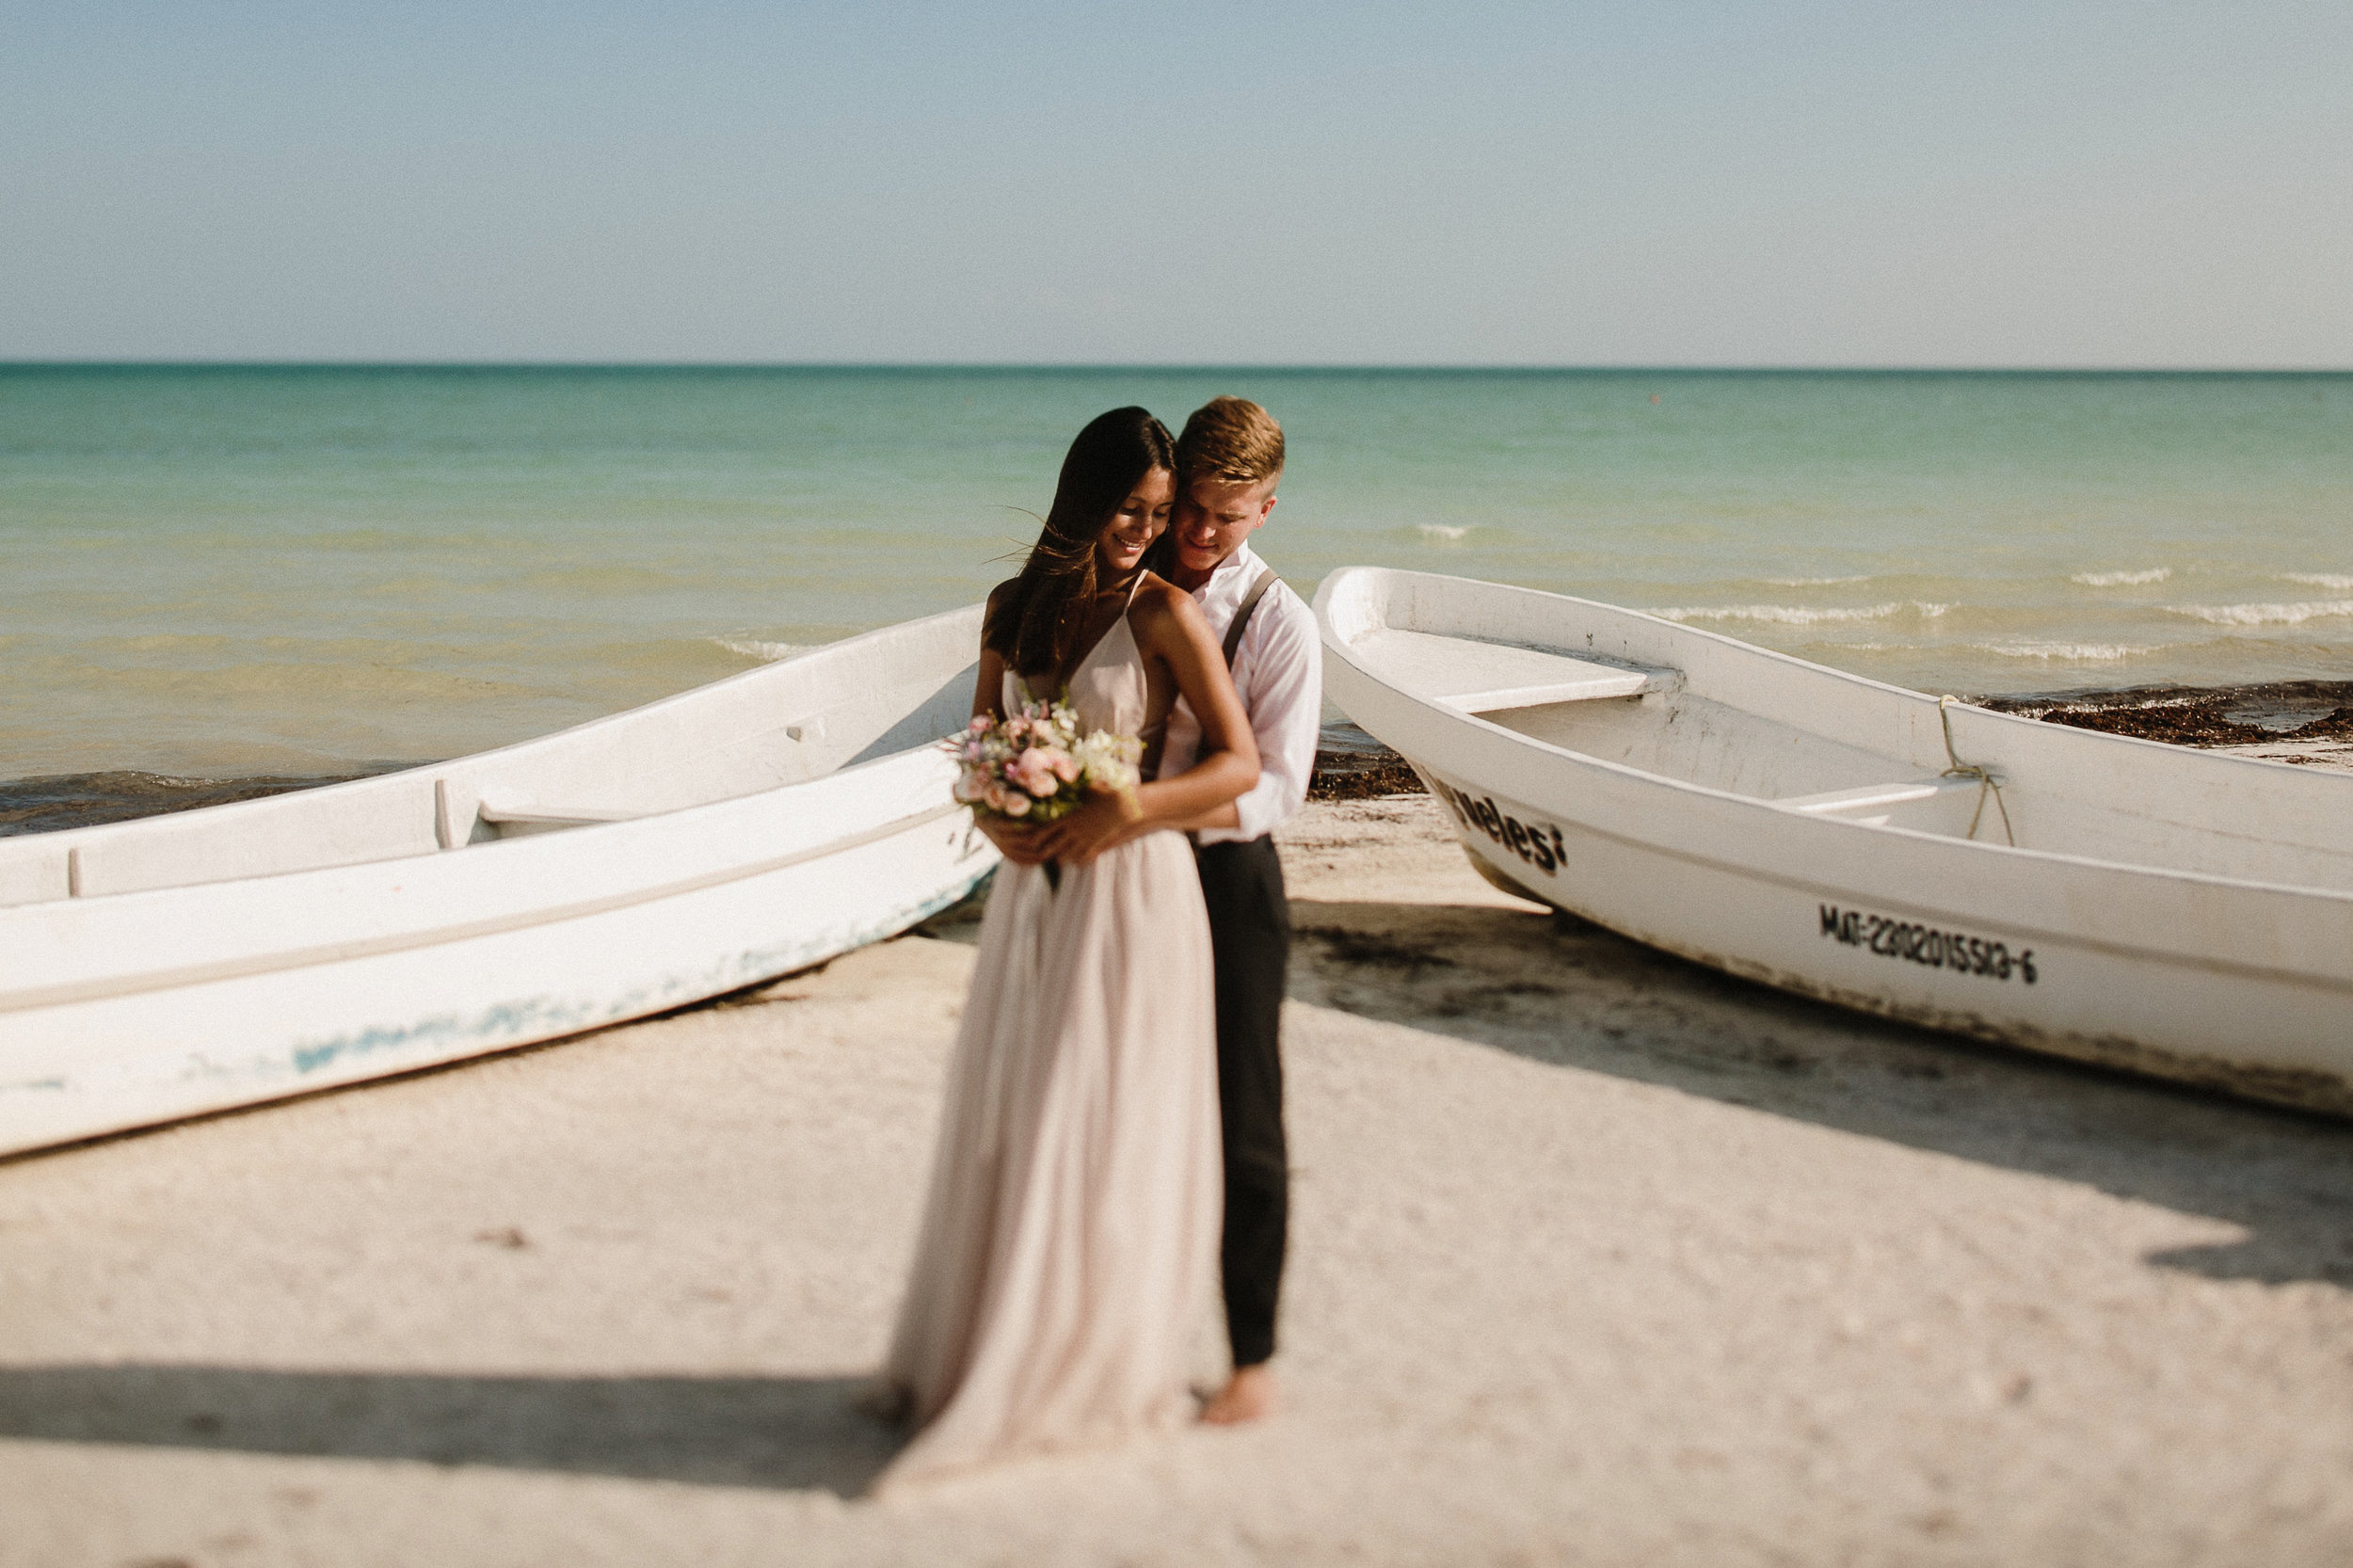 alfonso_flores_destination_wedding_photographer_holbox_nomada_workshop-272.jpg